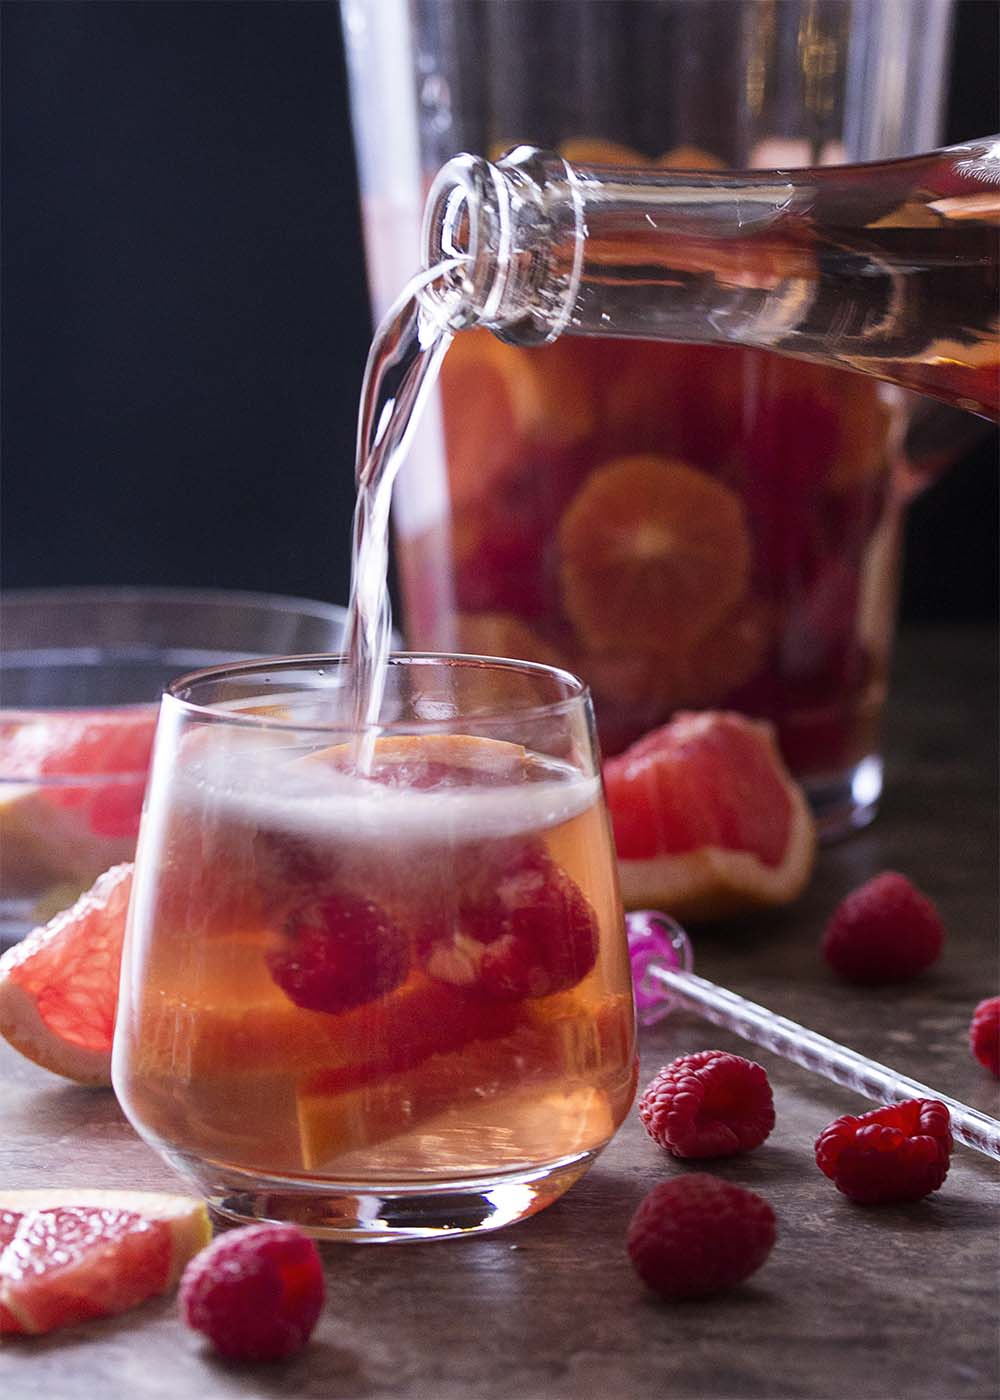 Pouring the sparkling wine into a glass of rose sangria